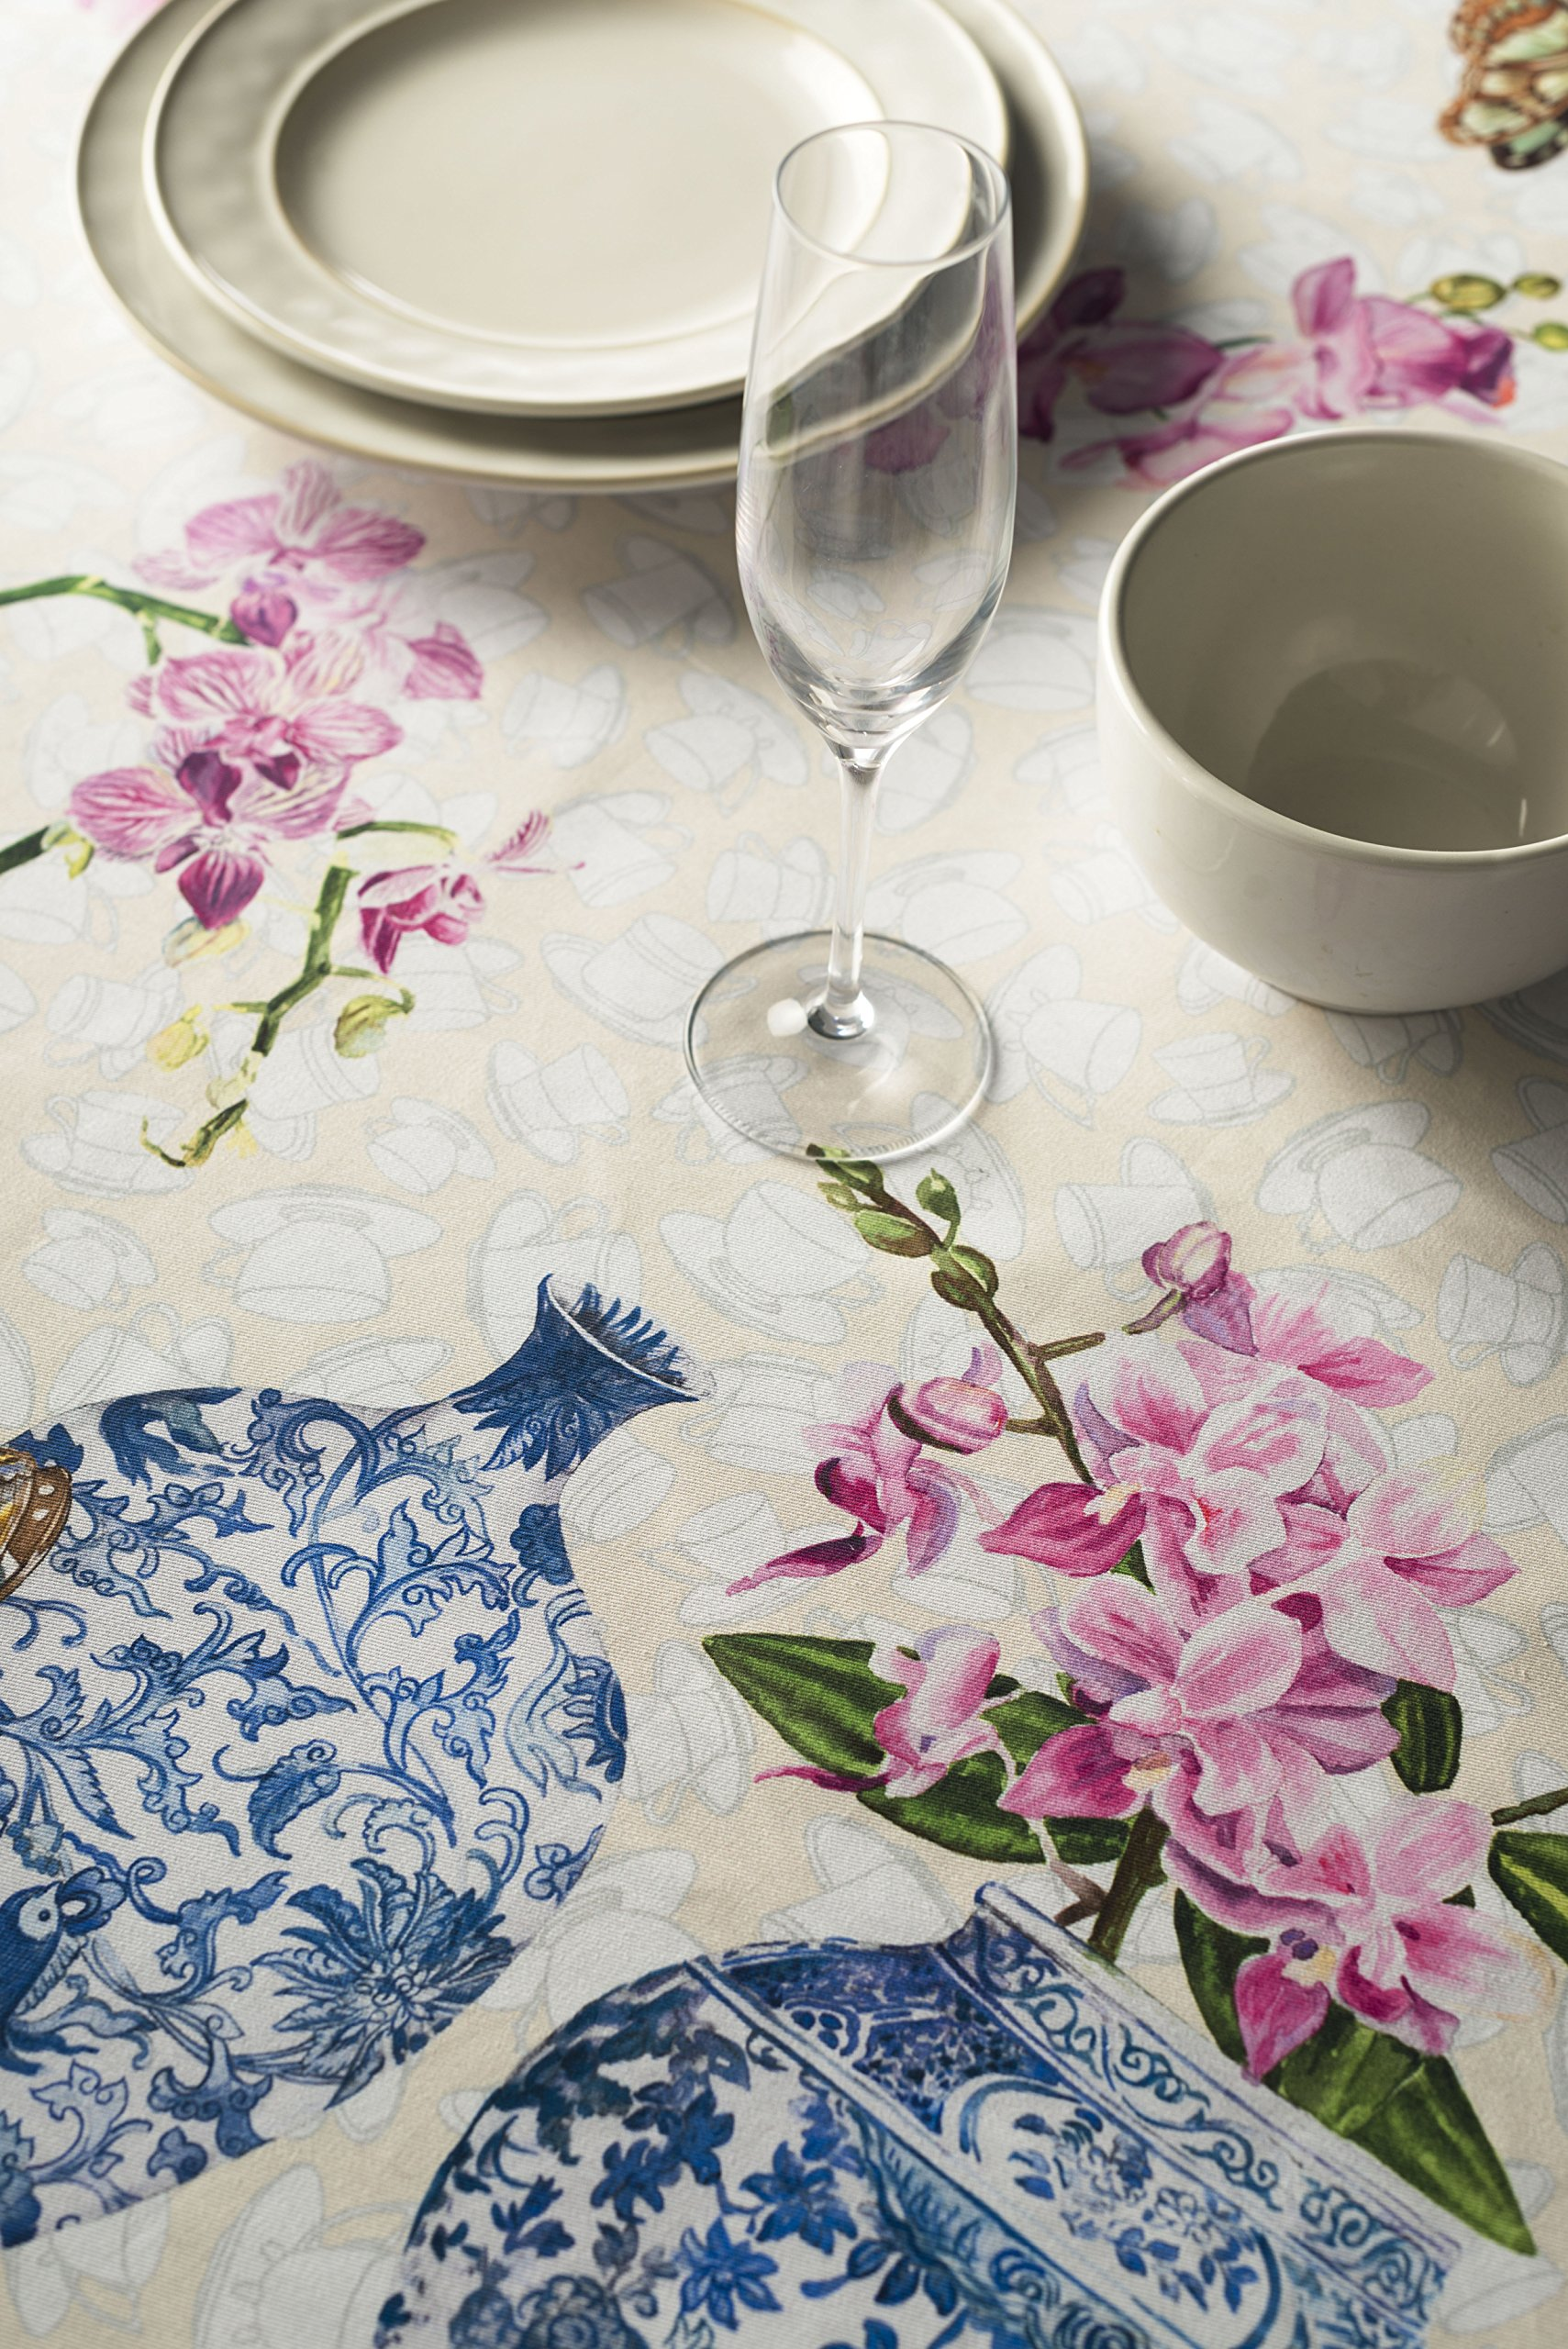 Maison d' Hermine Canton 100% Cotton Tablecloth for Kitchen Dining | Tabletop | Decoration | Parties | Weddings | Spring/Summer (Square, 54 Inch by 54 Inch). - Designed in France 100% Cotton and machine washable Package includes - 1 Tablecloth - tablecloths, kitchen-dining-room-table-linens, kitchen-dining-room - 91QztRVVtPL -